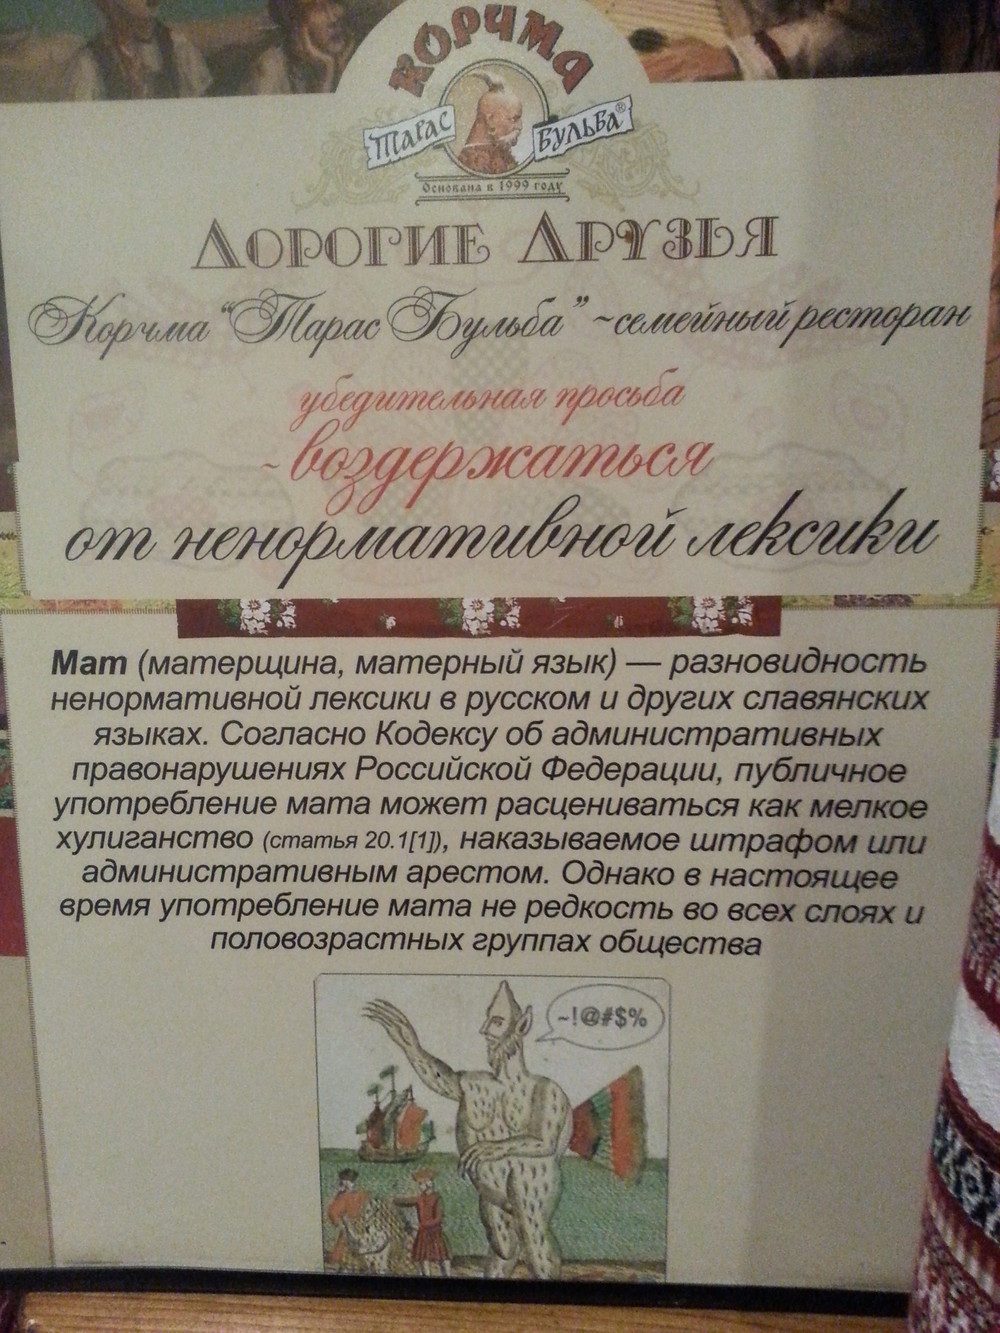 Ukrainian restaurant notice about language.